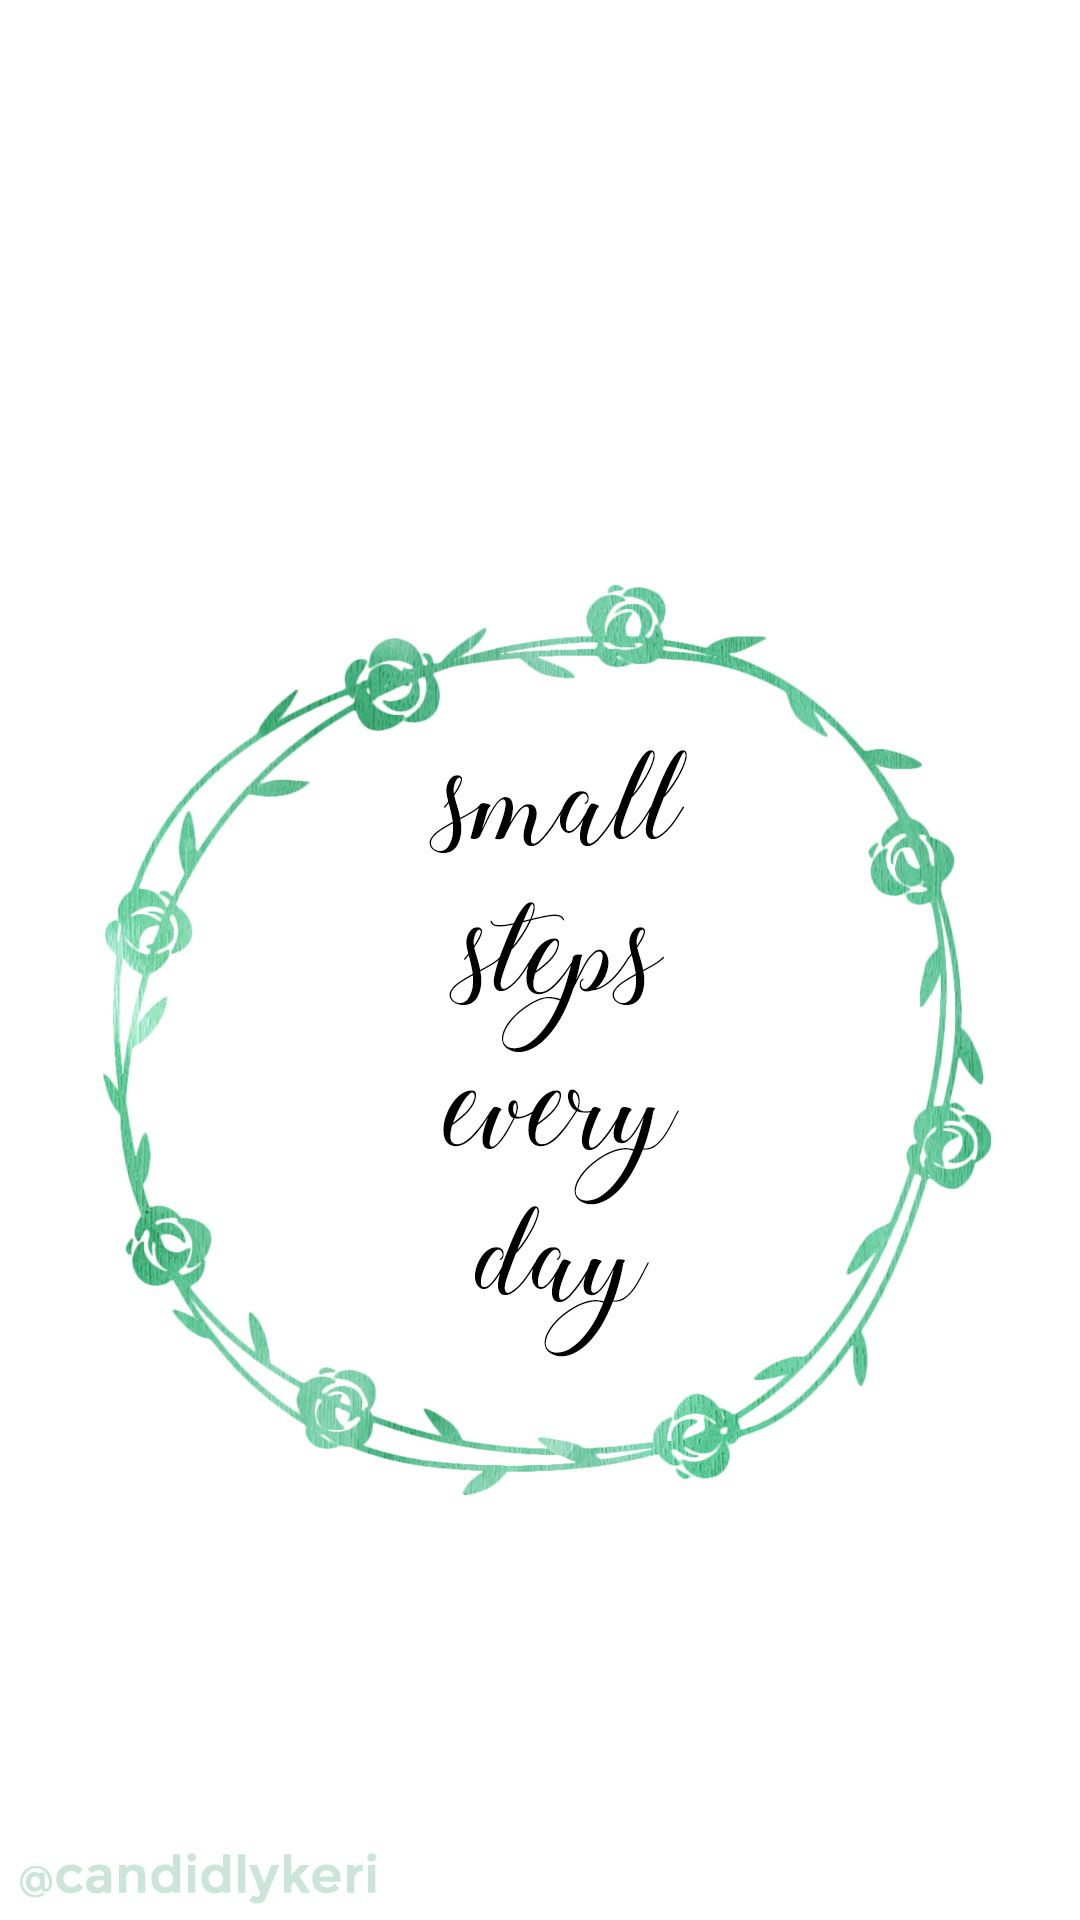 Small Steps Every Day Green Watercolor Flower Wreath Crown Quote